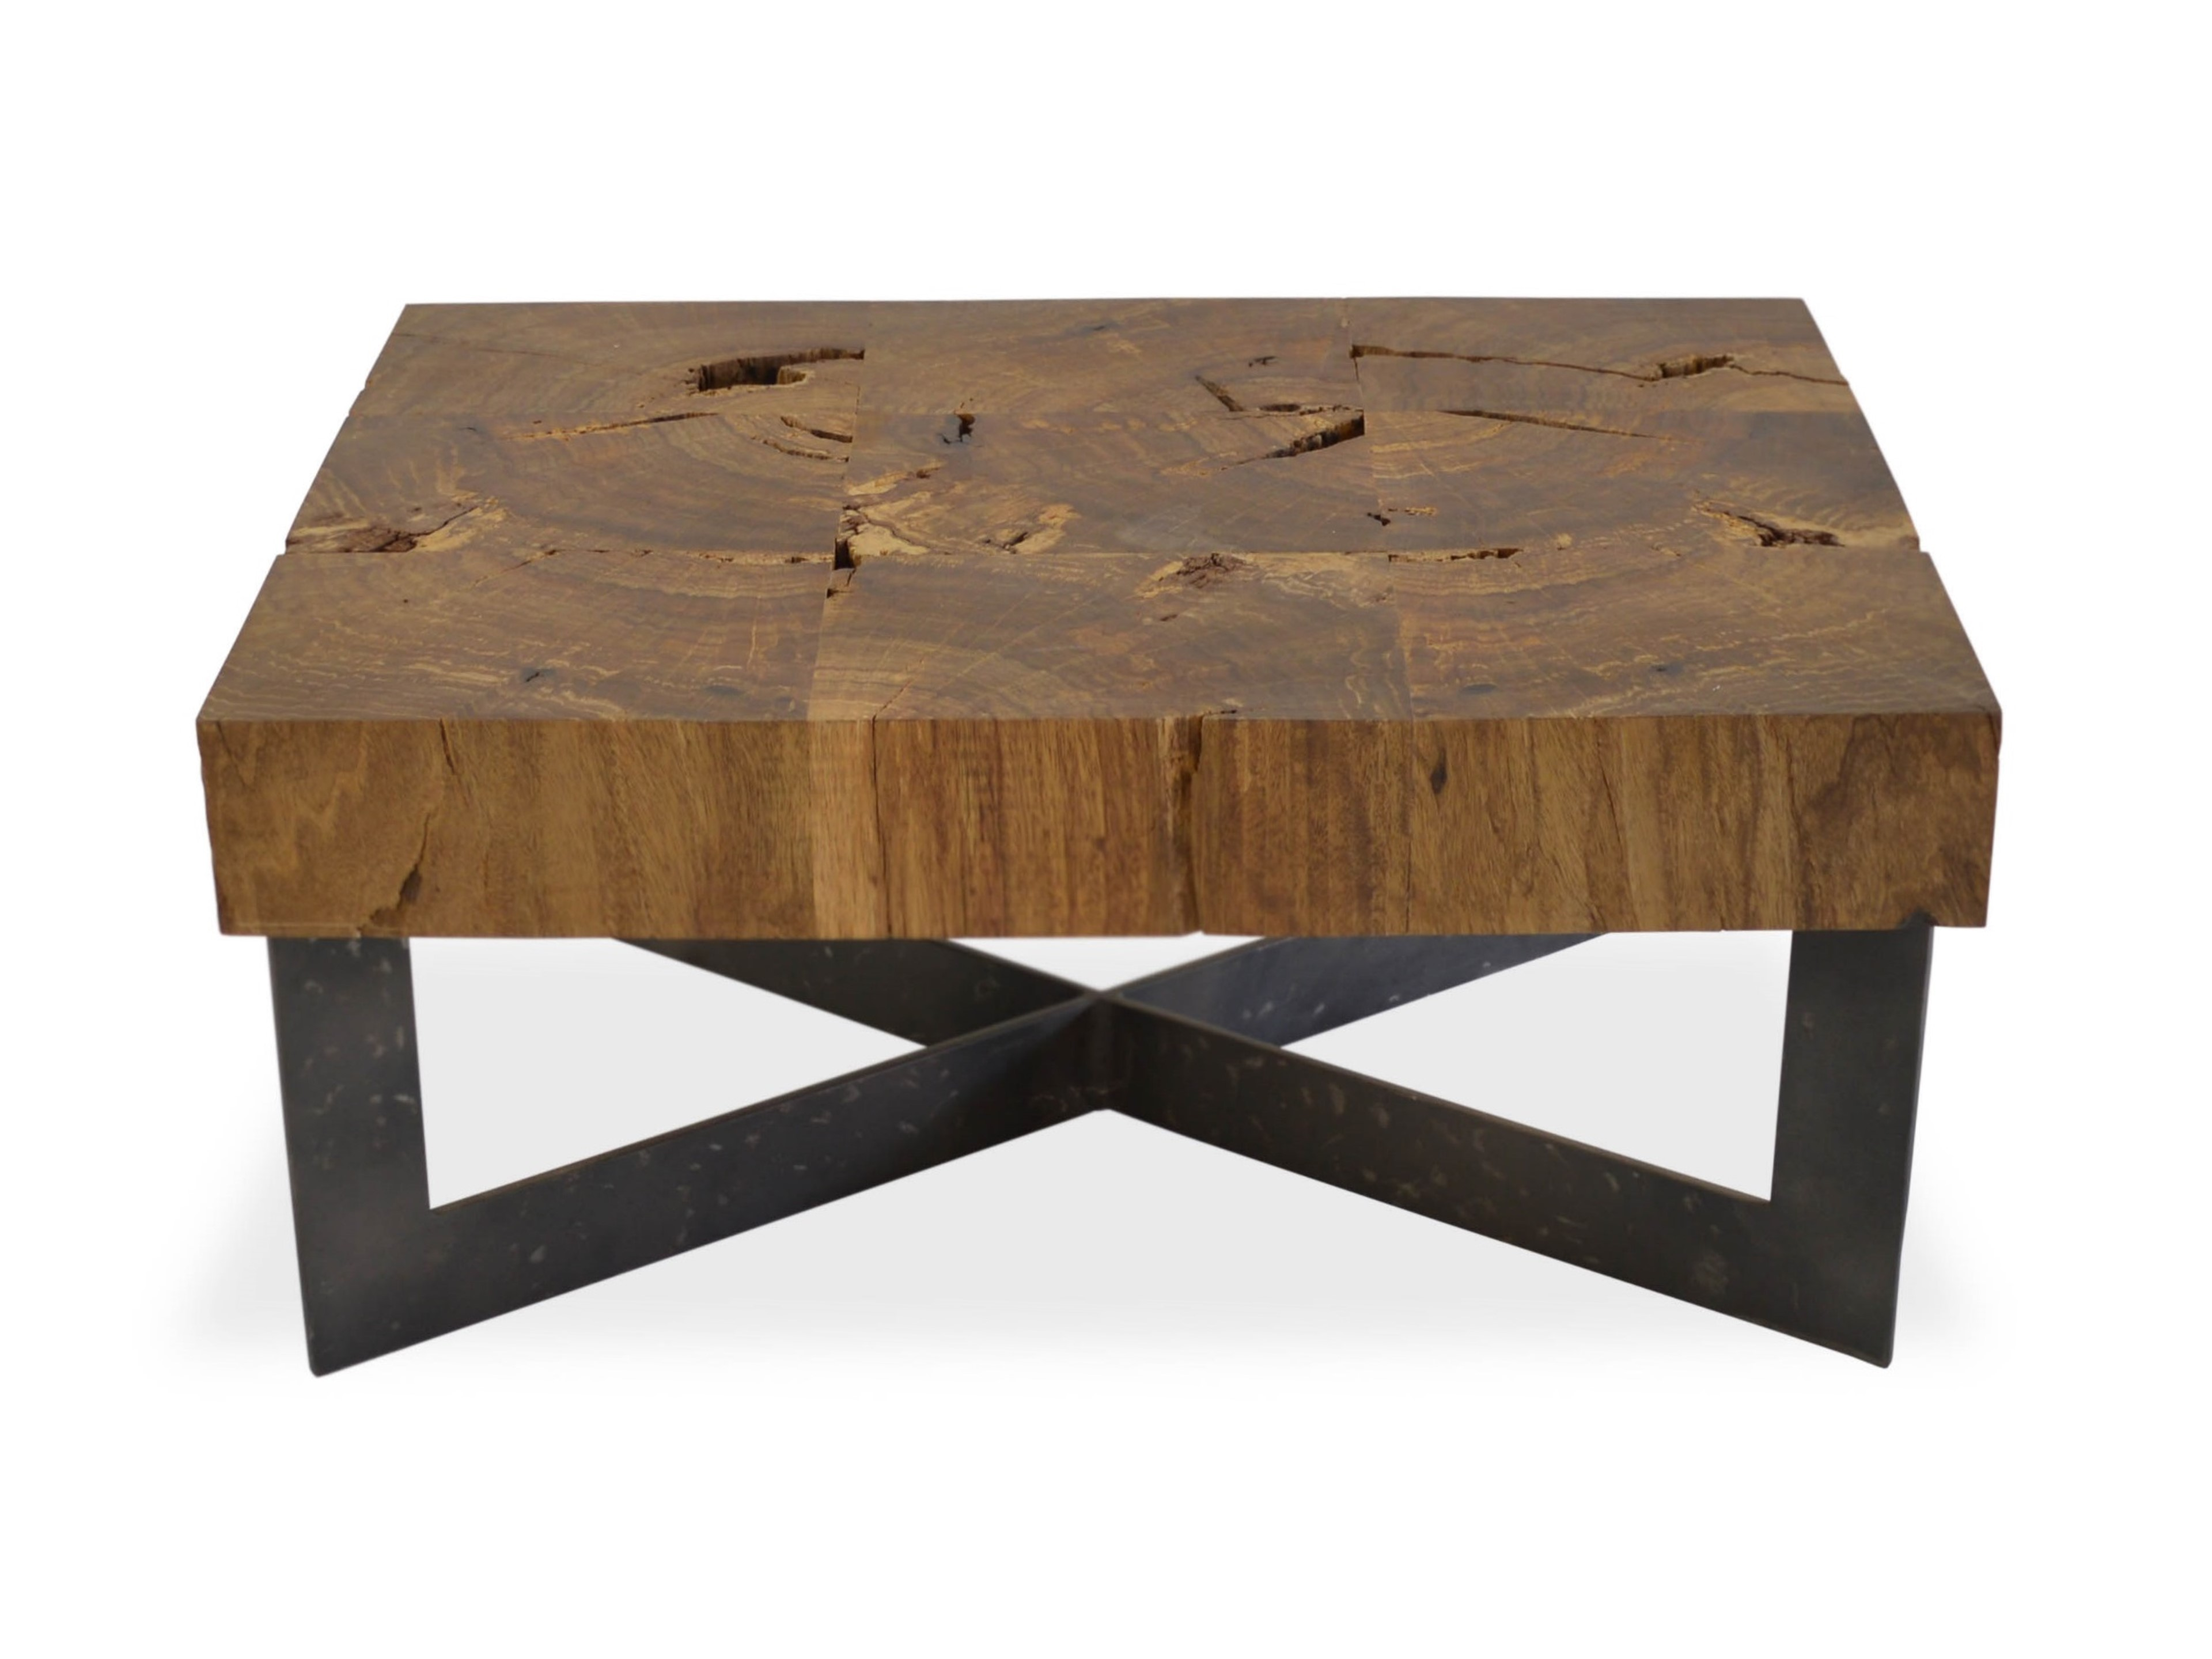 wood furniture reclaimed kitchen small square accent table old barn glass side tables for living room metal and coffee base full size garden large crystal lamp outdoor chairs rain